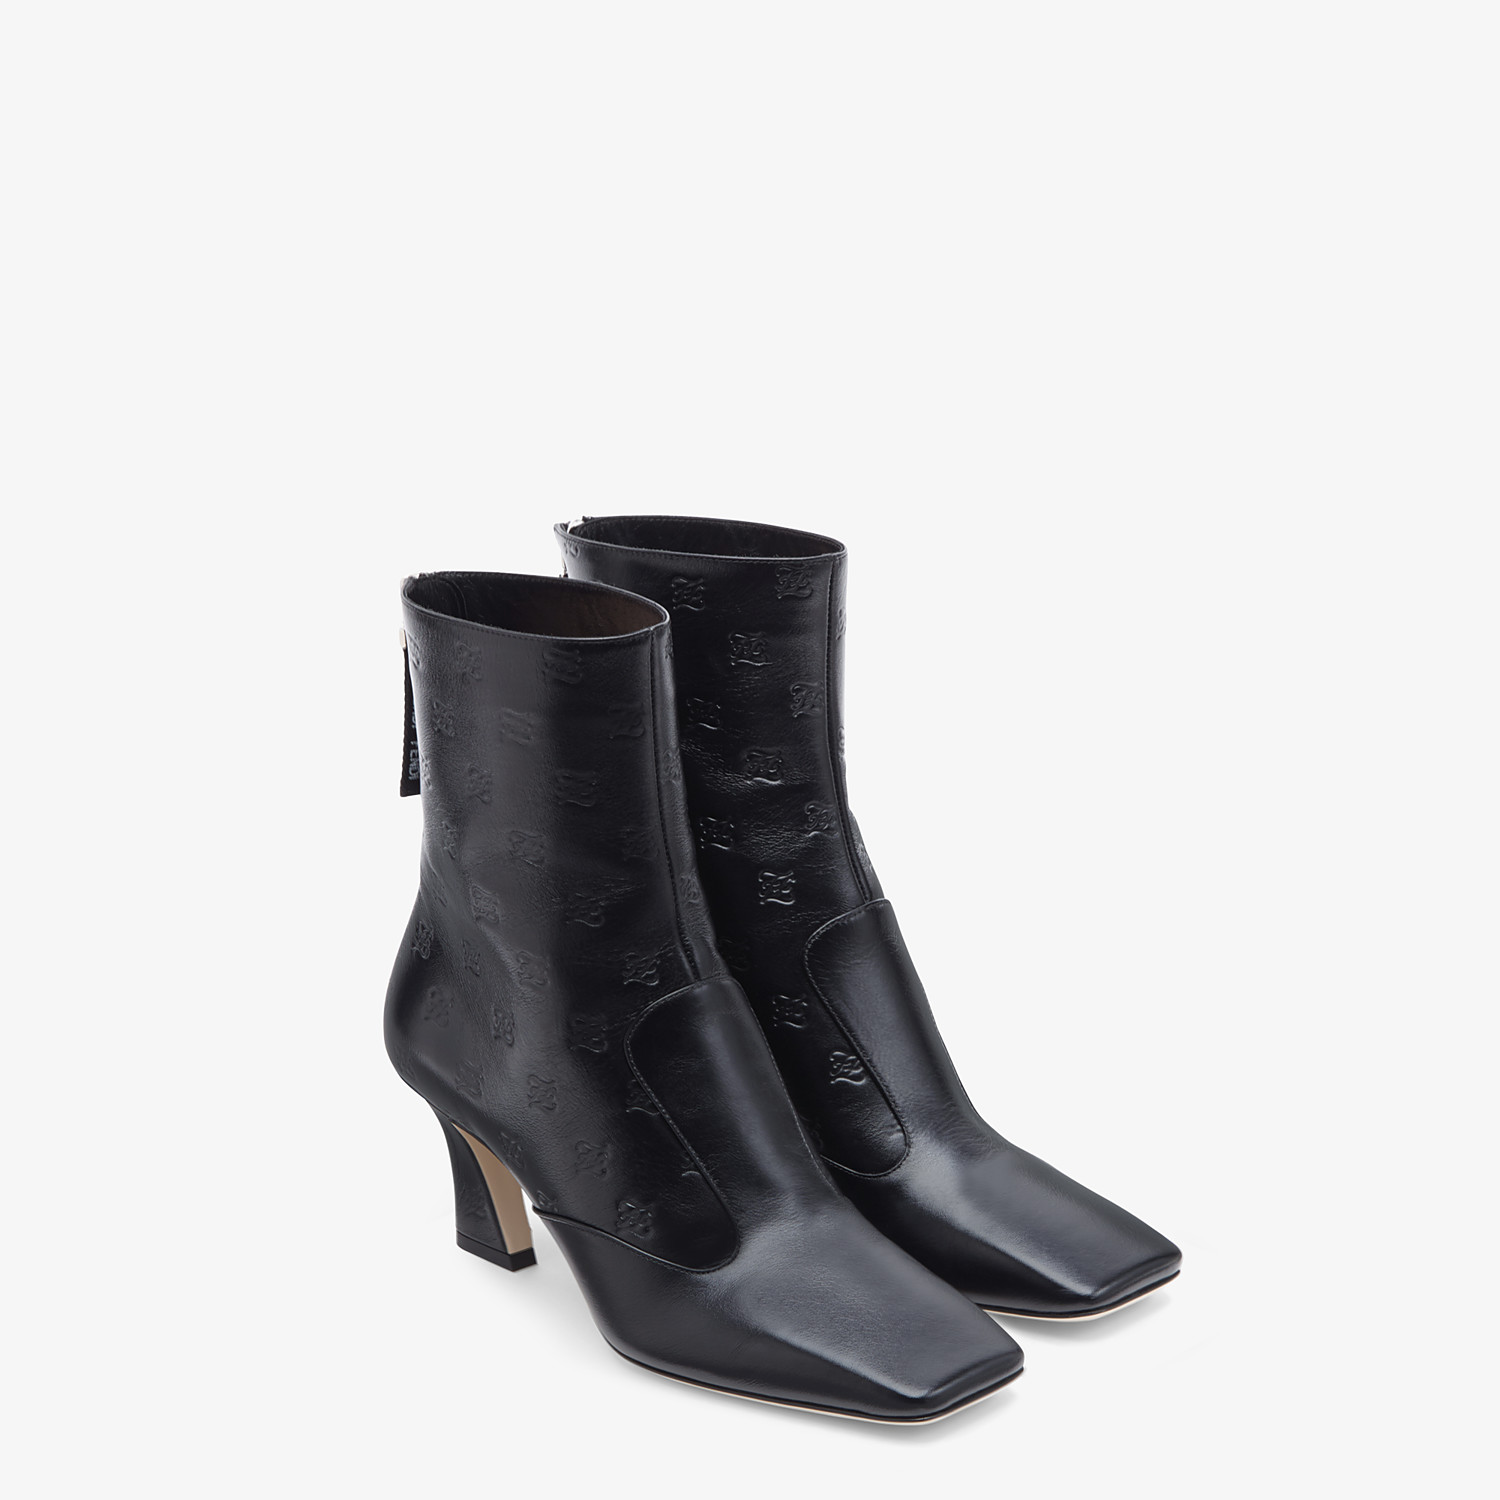 FENDI BOOTS - Black leather booties - view 4 detail